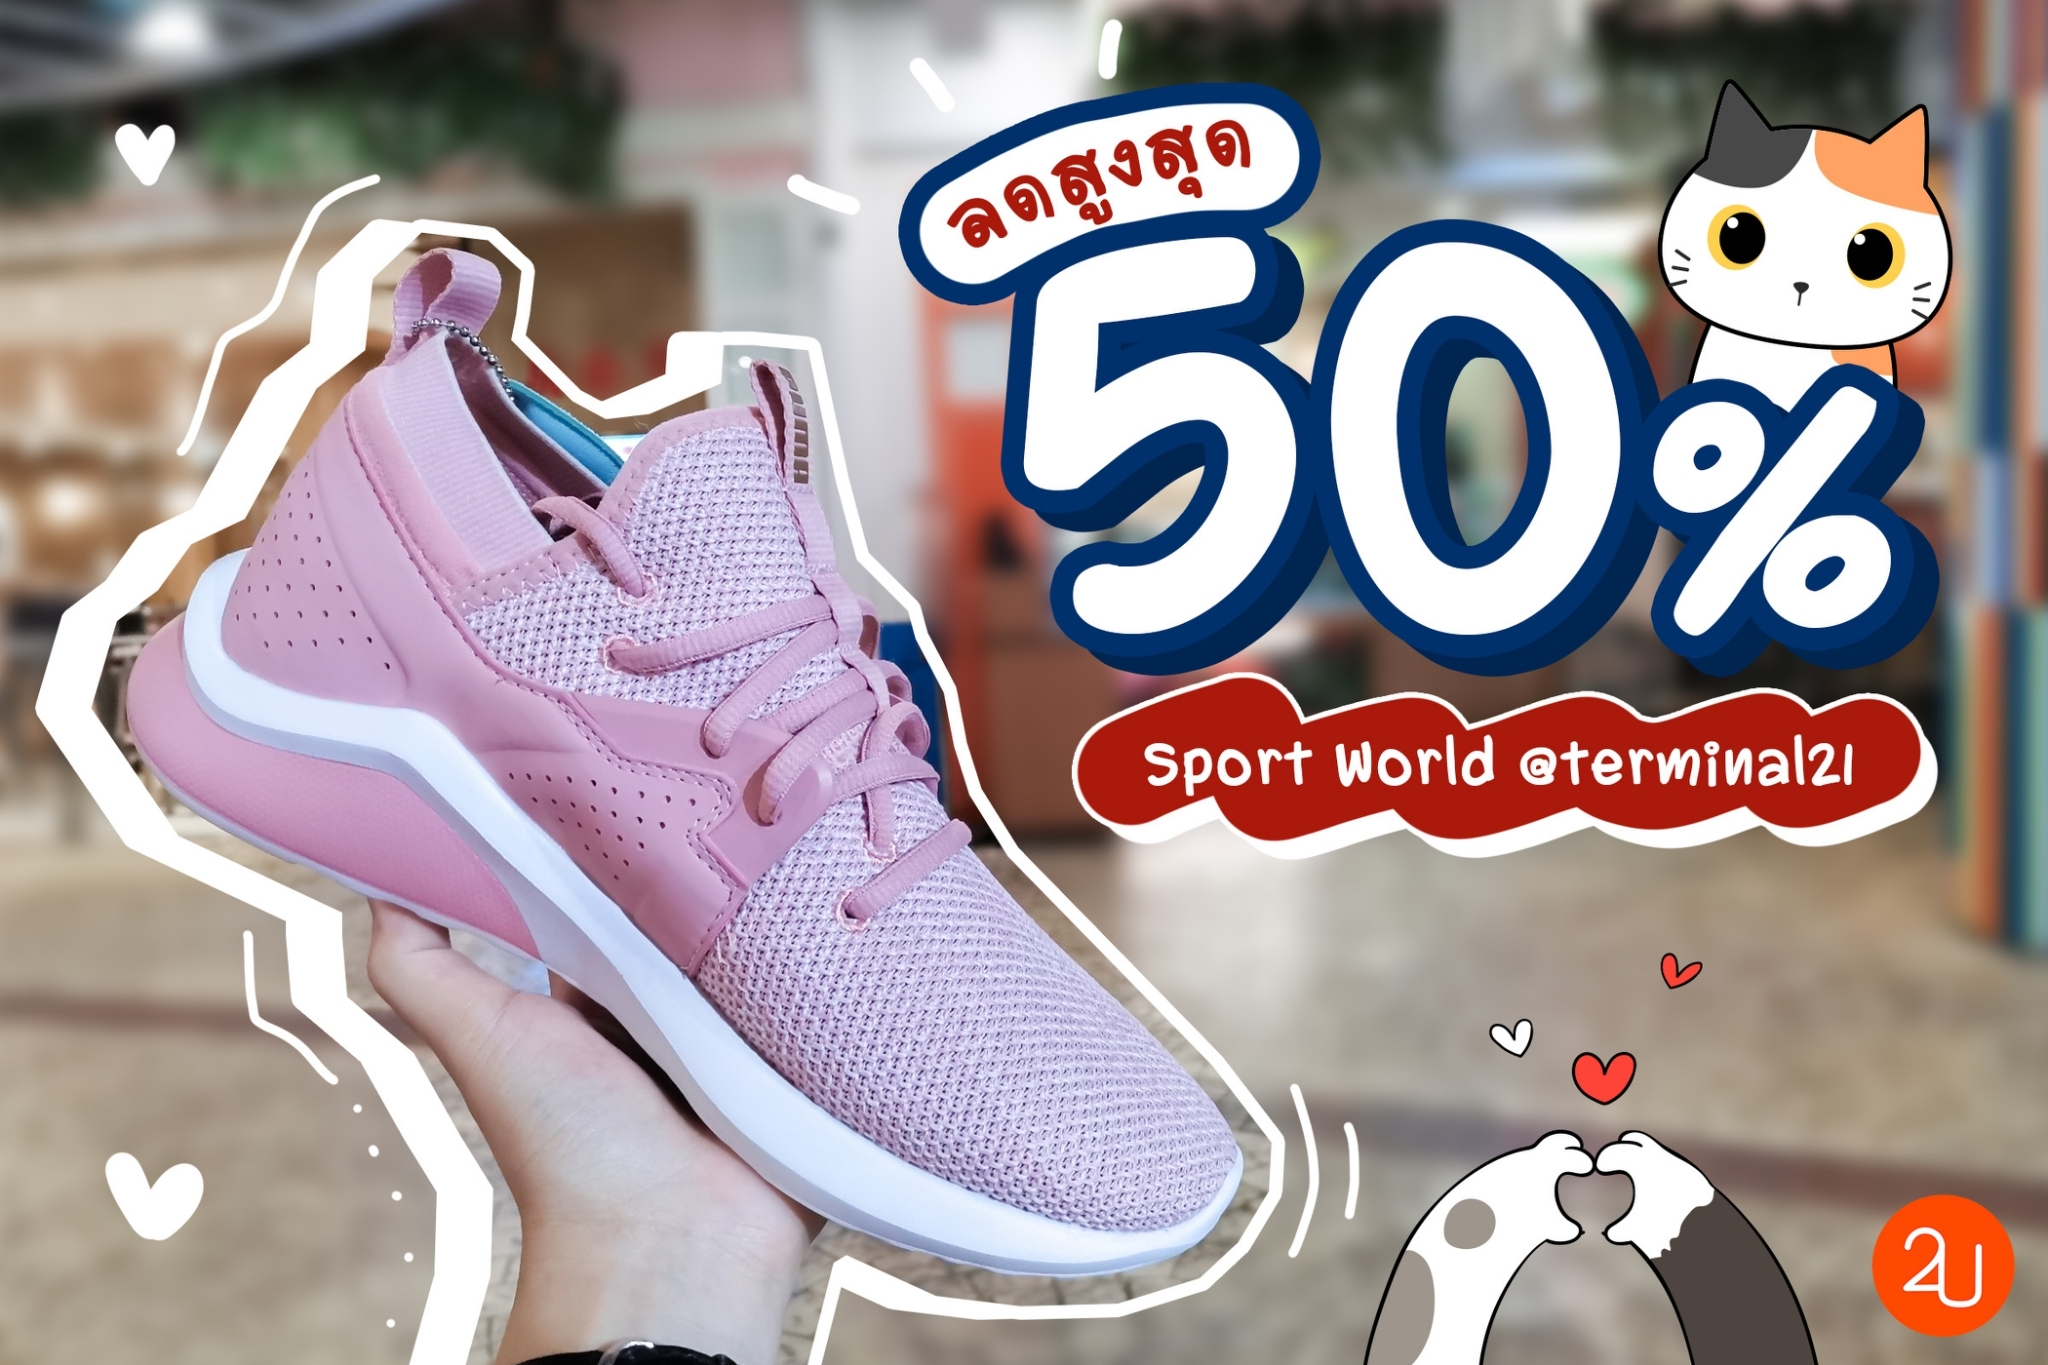 promotion Sports World sale 50 at Terminal21 Asok